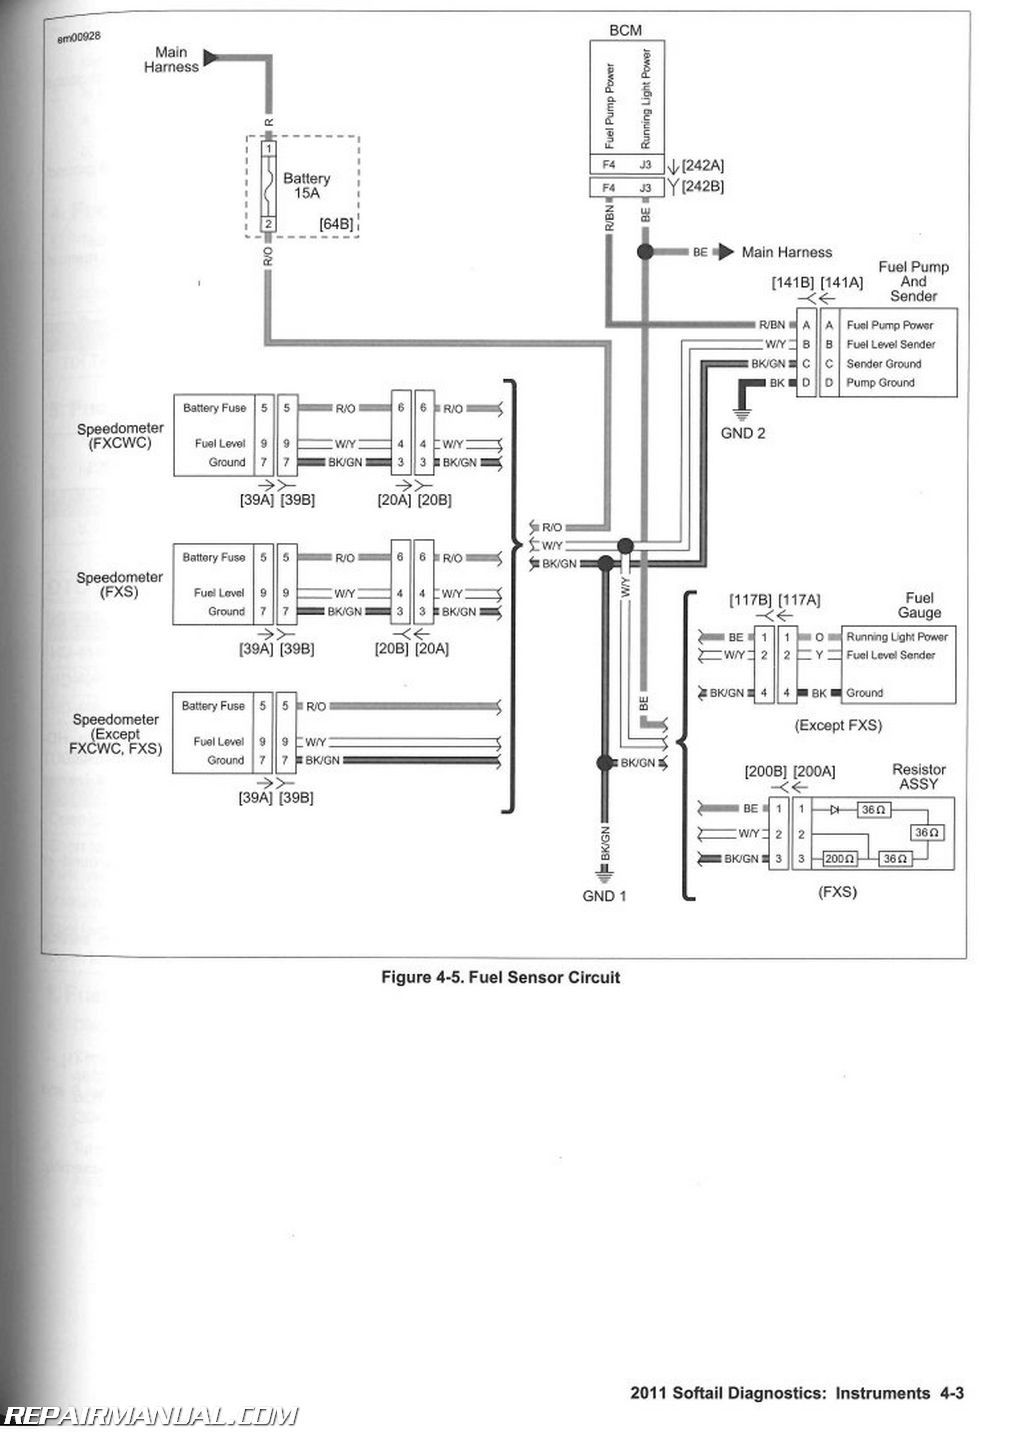 2011 harley davidson softail motorcycle electrical diagnostic manual rh pinterest com dyna coil wiring diagram harley electronic ignition wiring diagram [ 1024 x 1435 Pixel ]